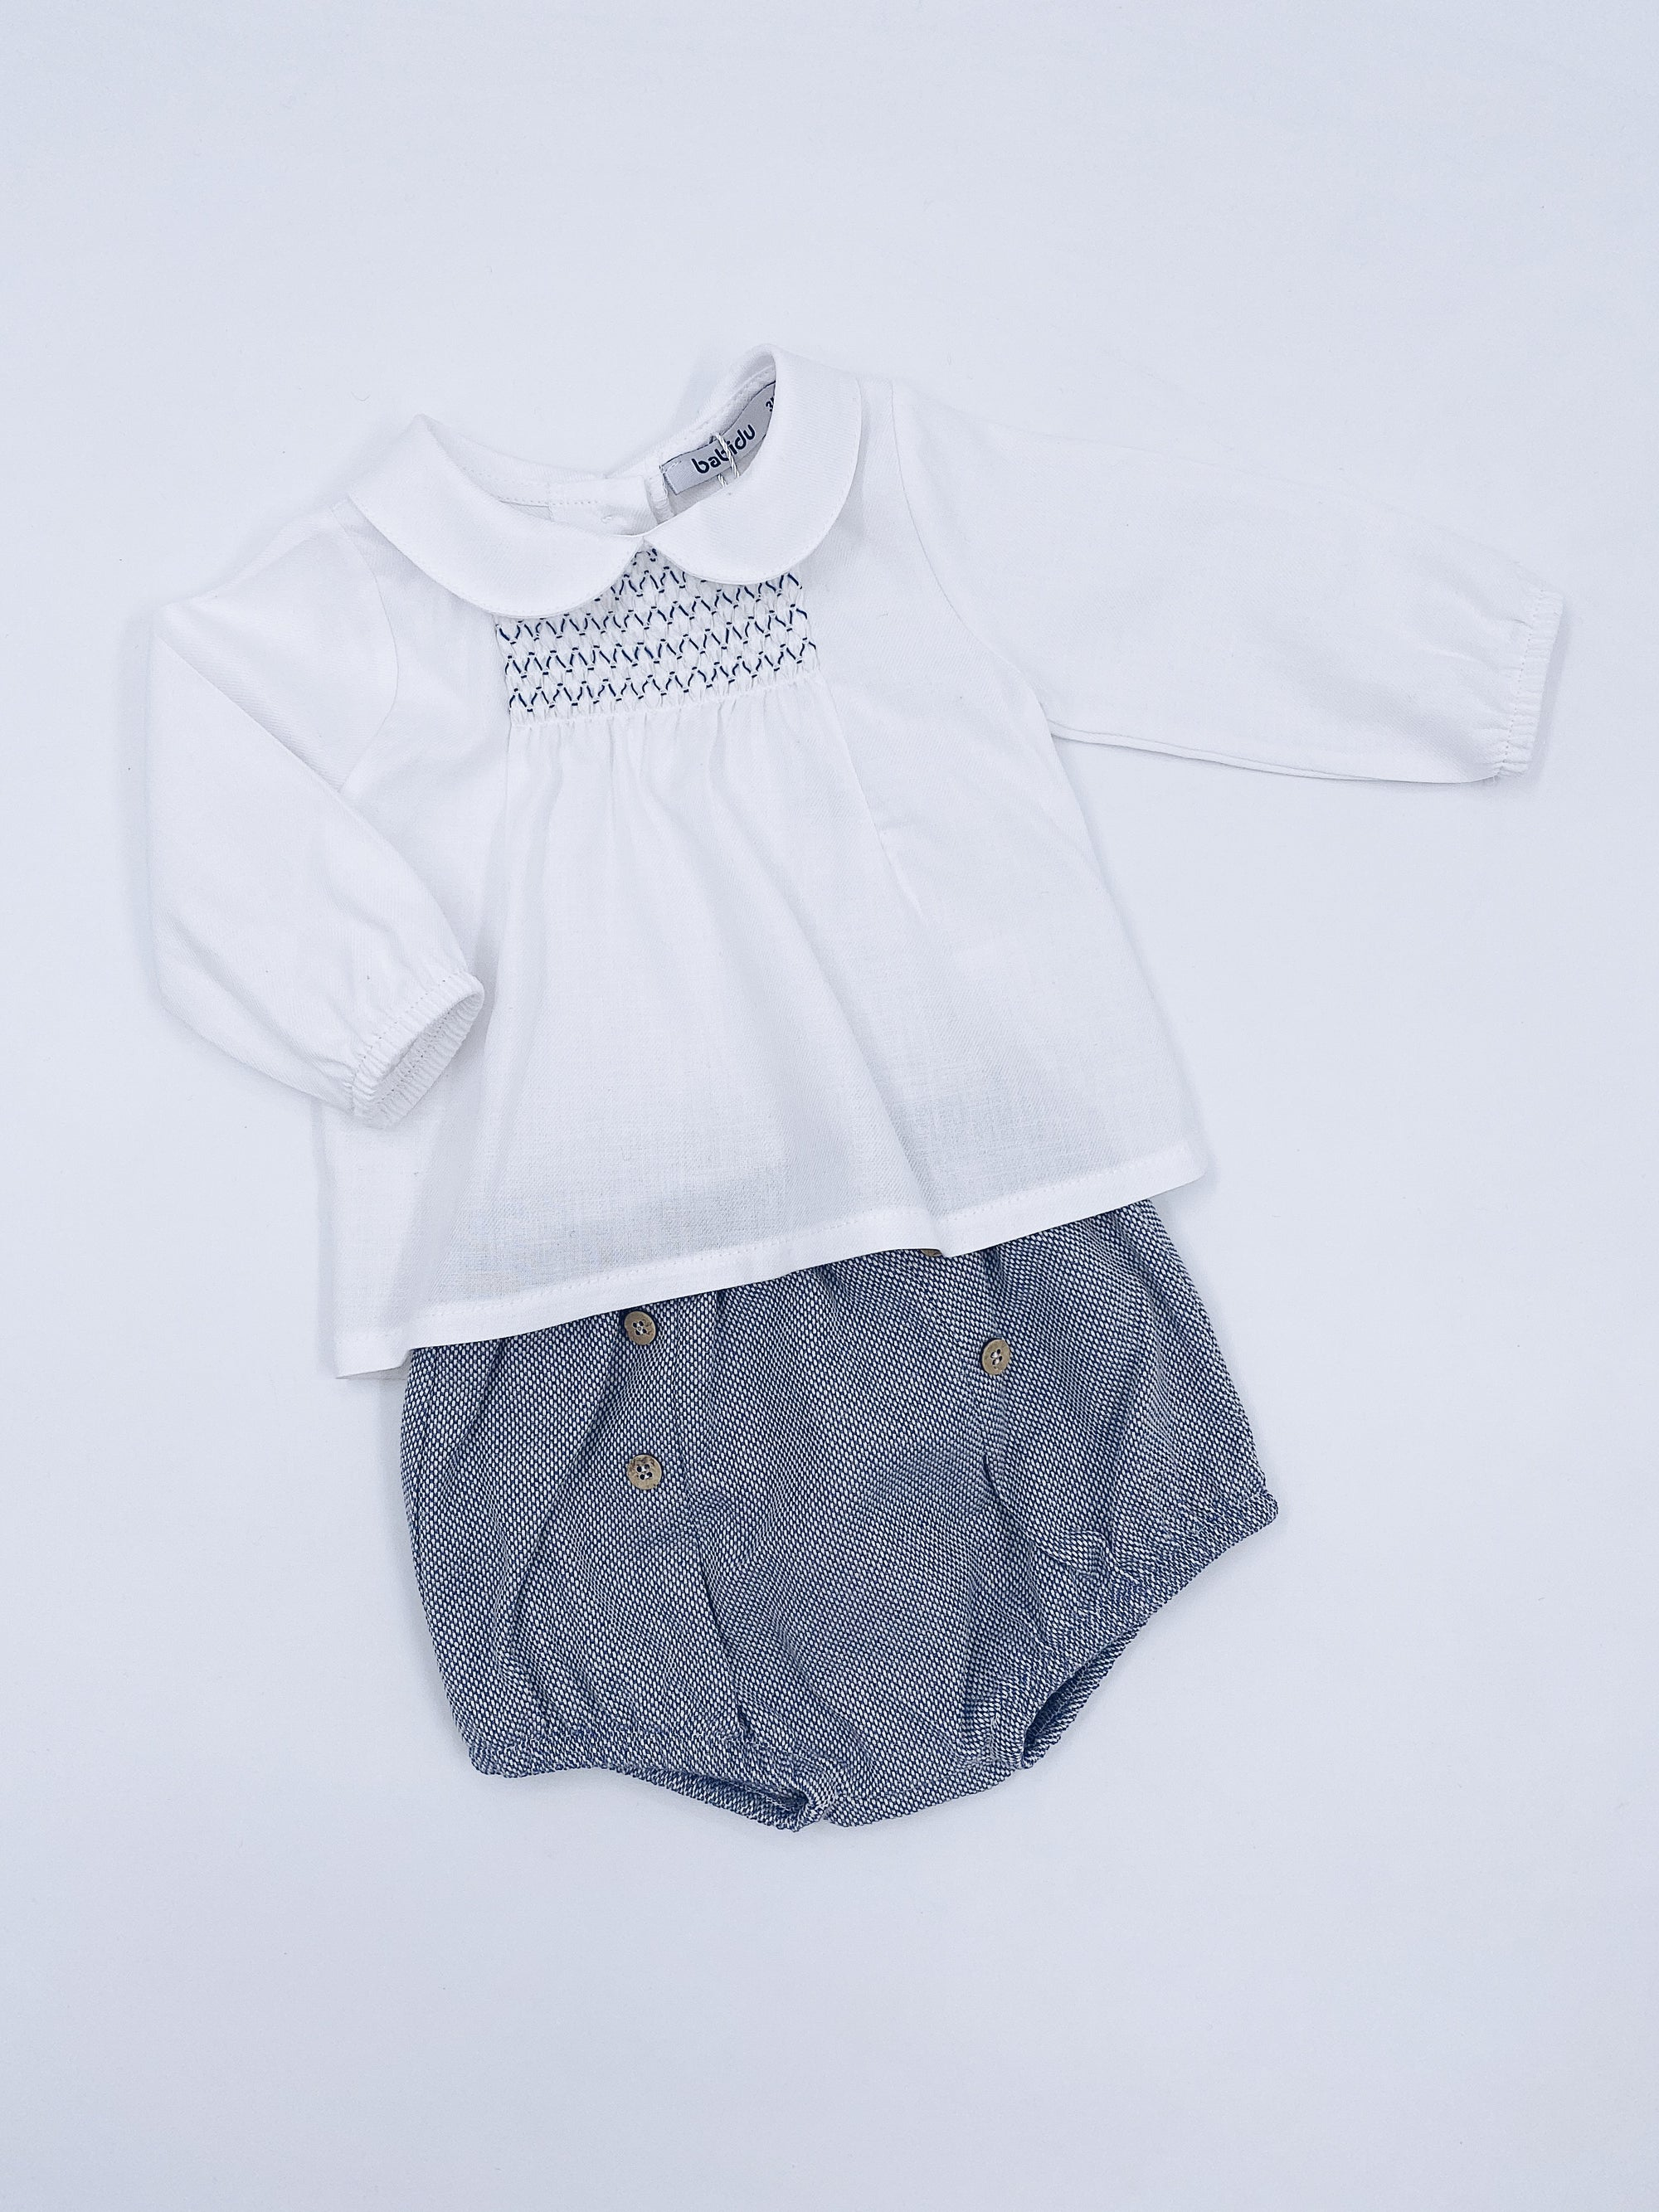 Beautiful unisex white shirt and shorts 2 piece set